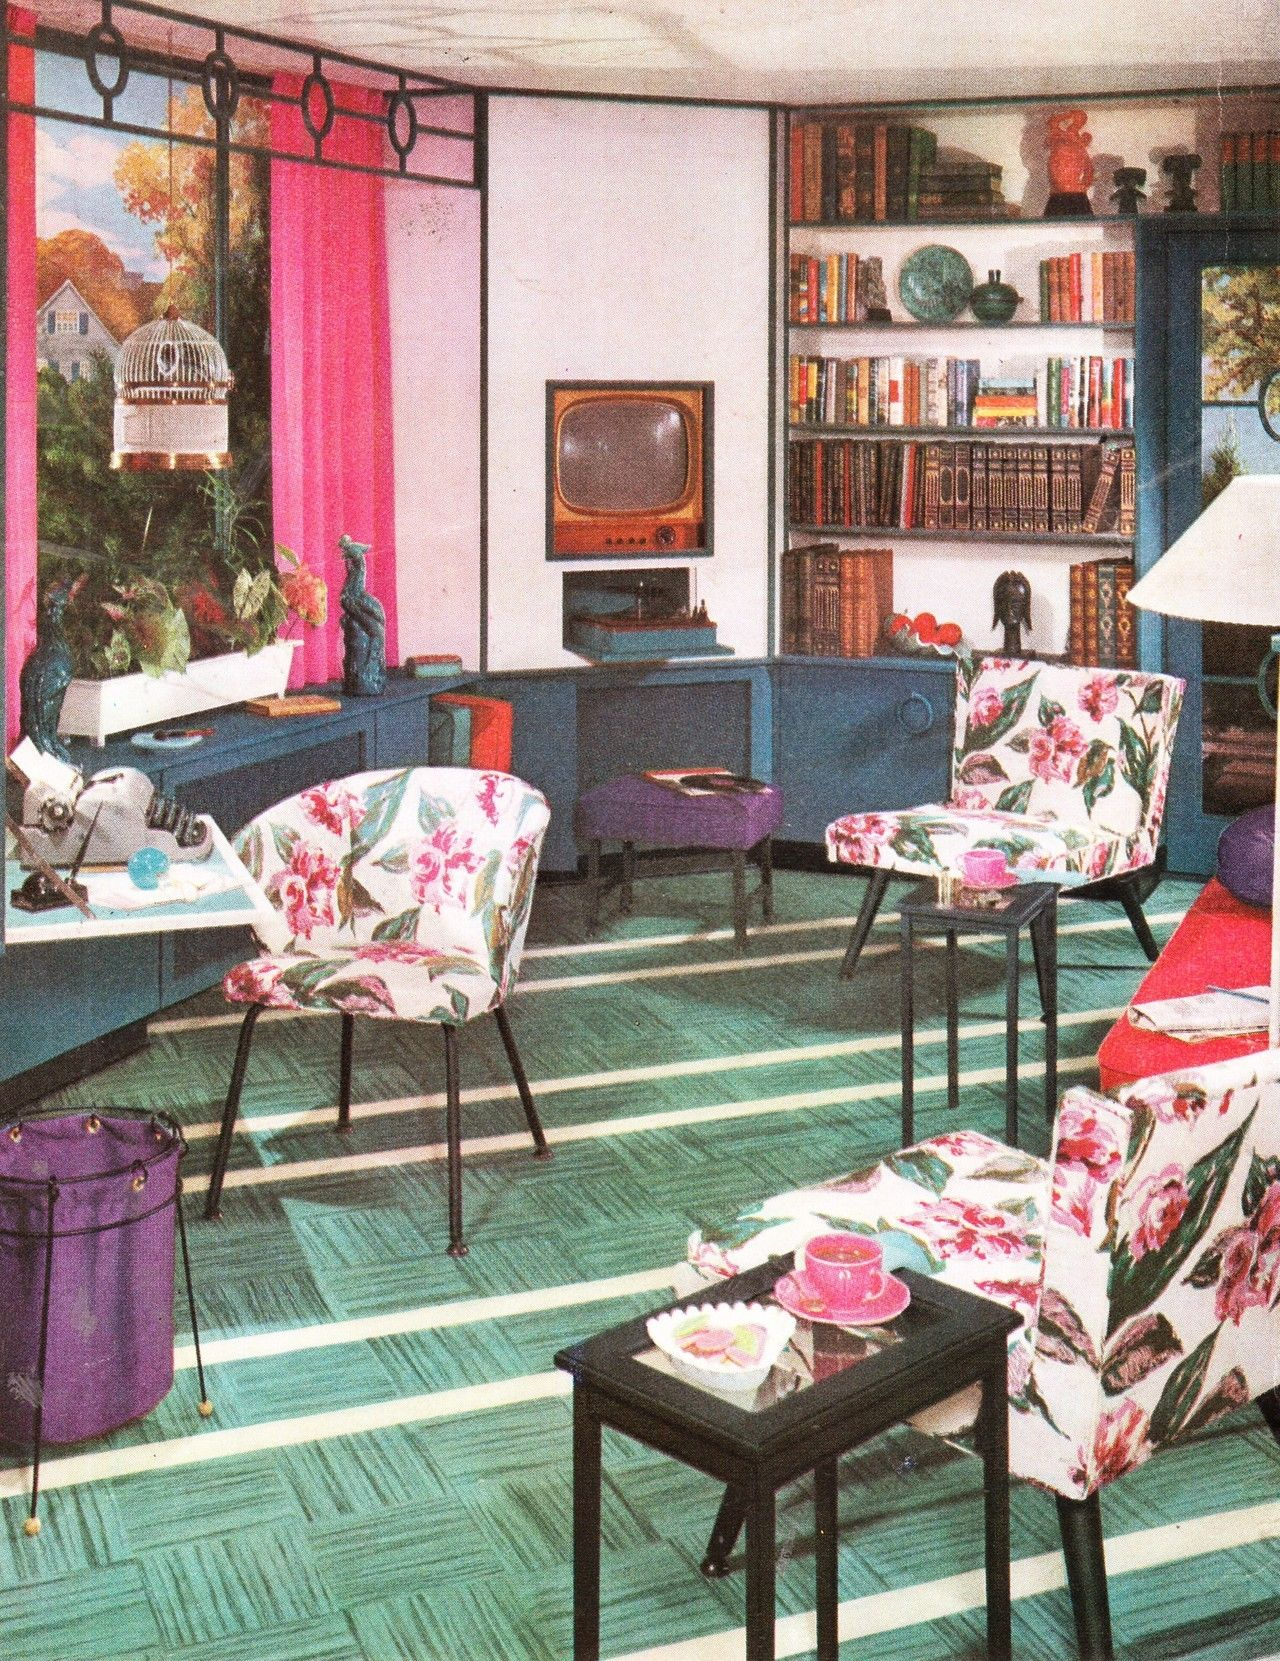 Rumpus Room Designs: Decor, Vintage Interiors, Room